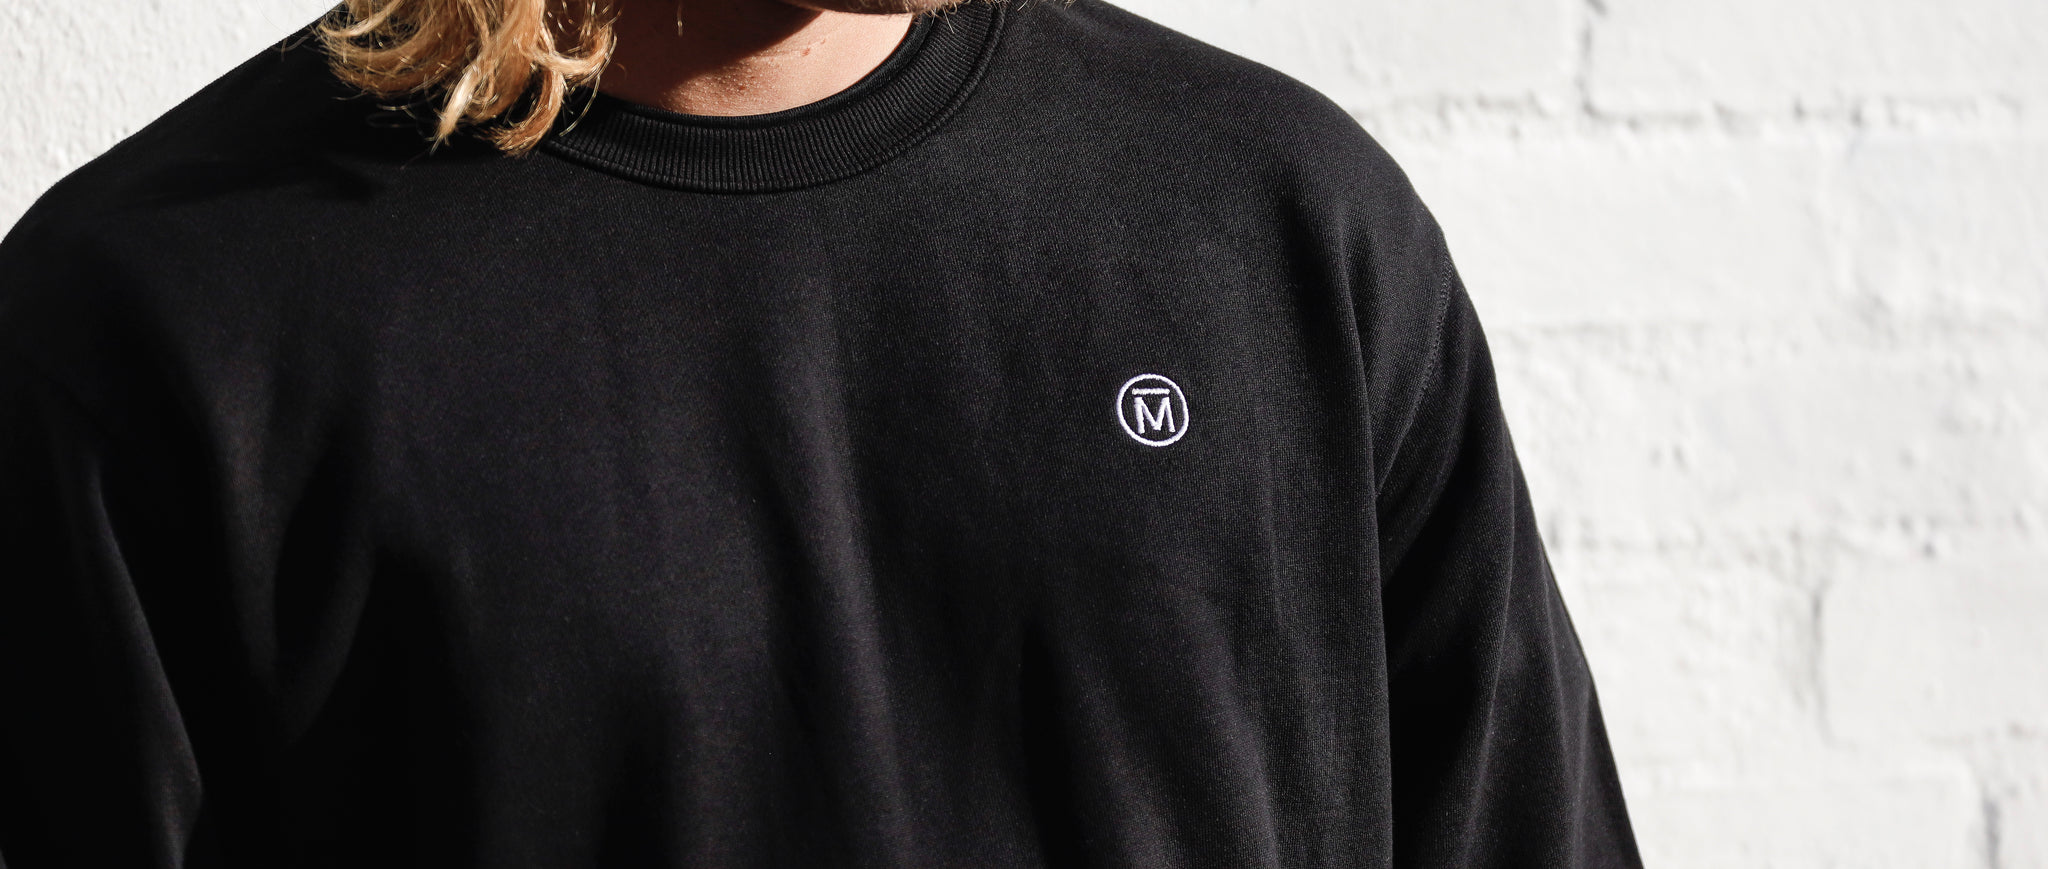 Mendl Hampton Black Sweater